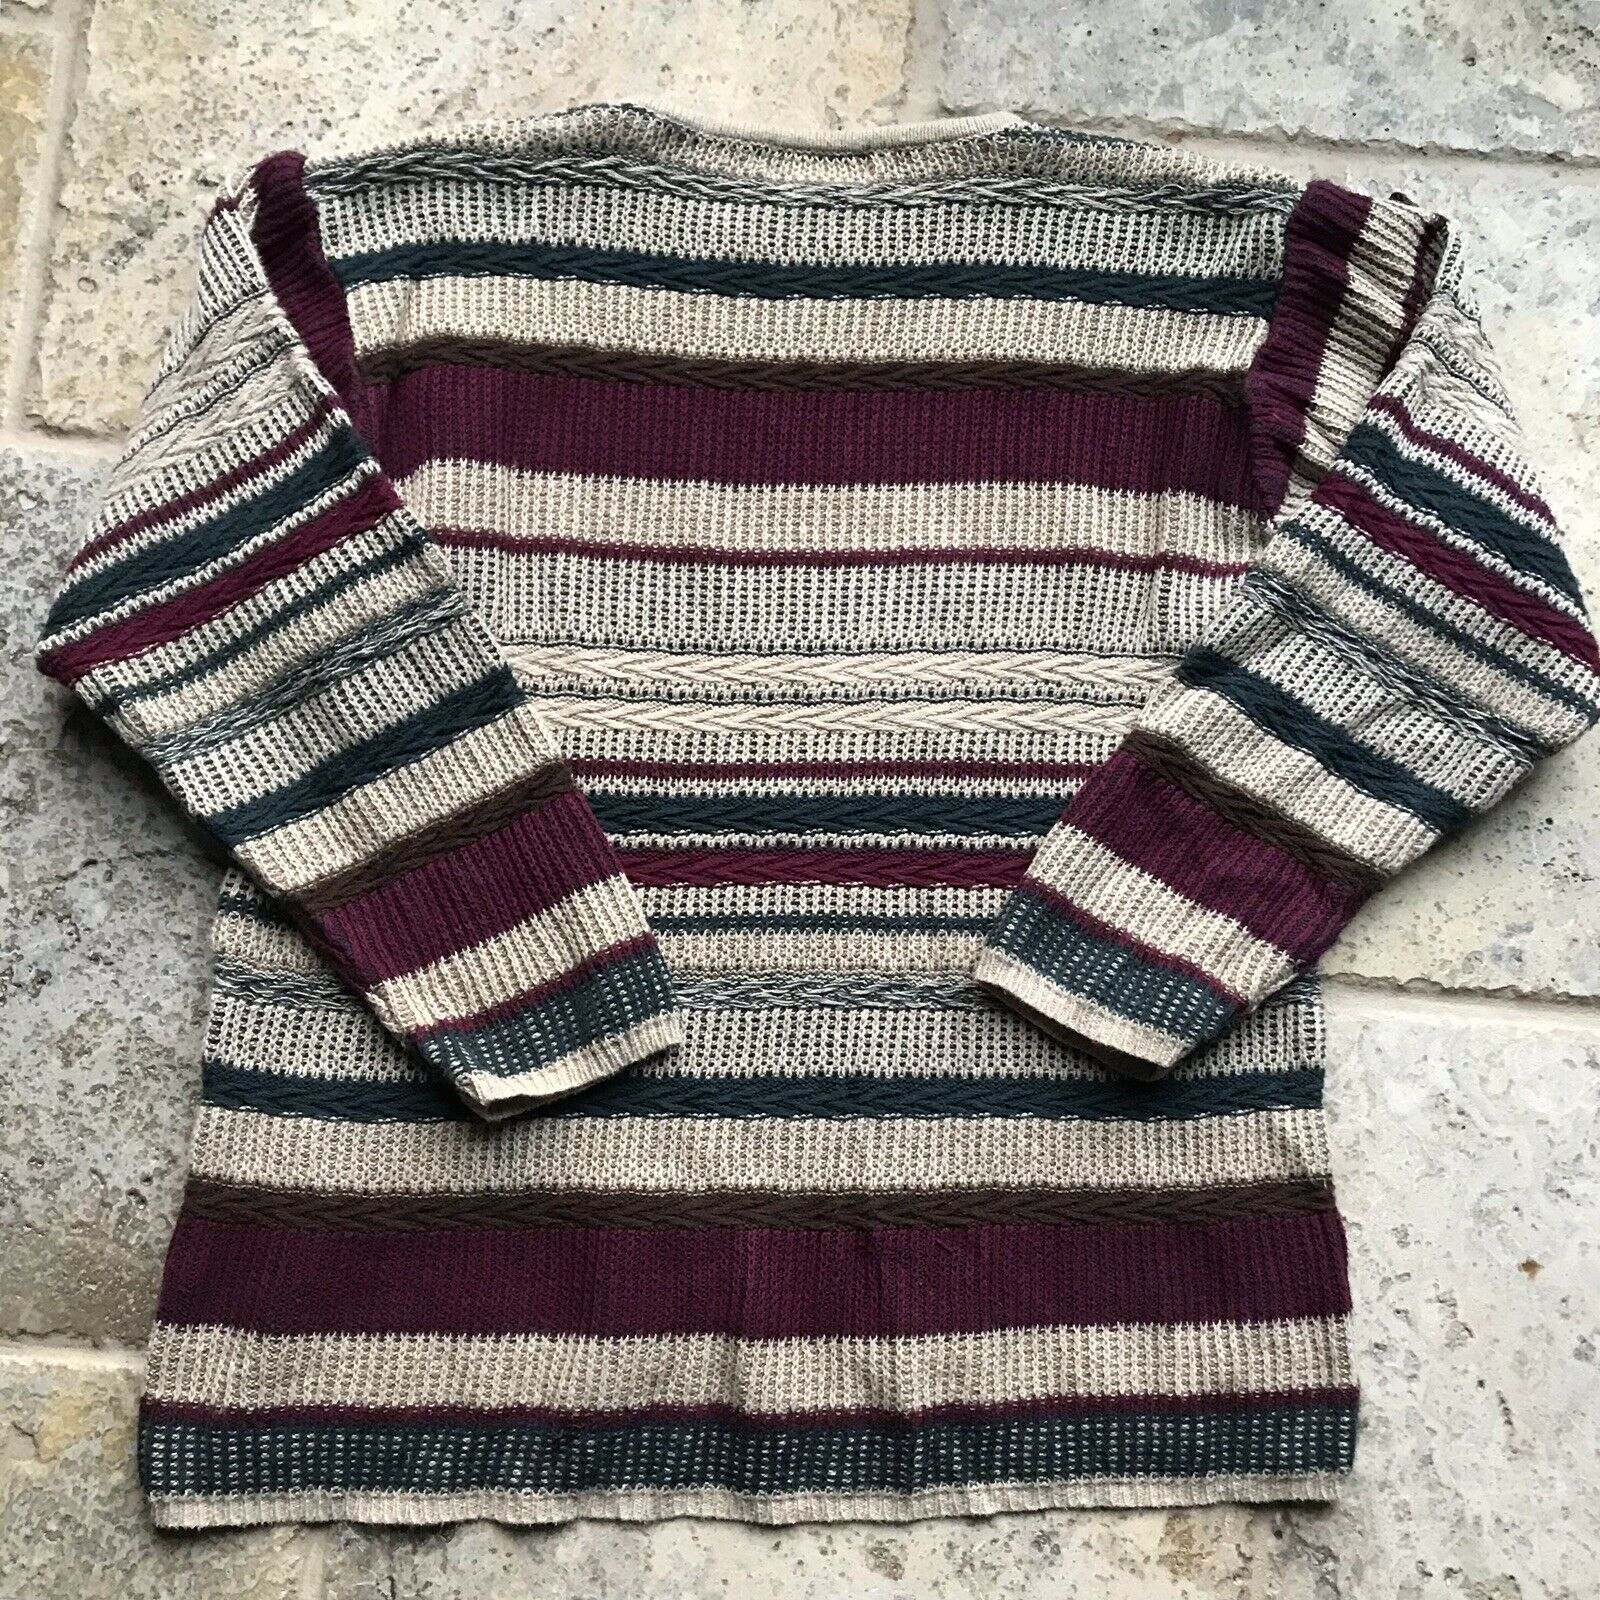 Vintage Textured Striped Knit Abstract Sweater - image 4